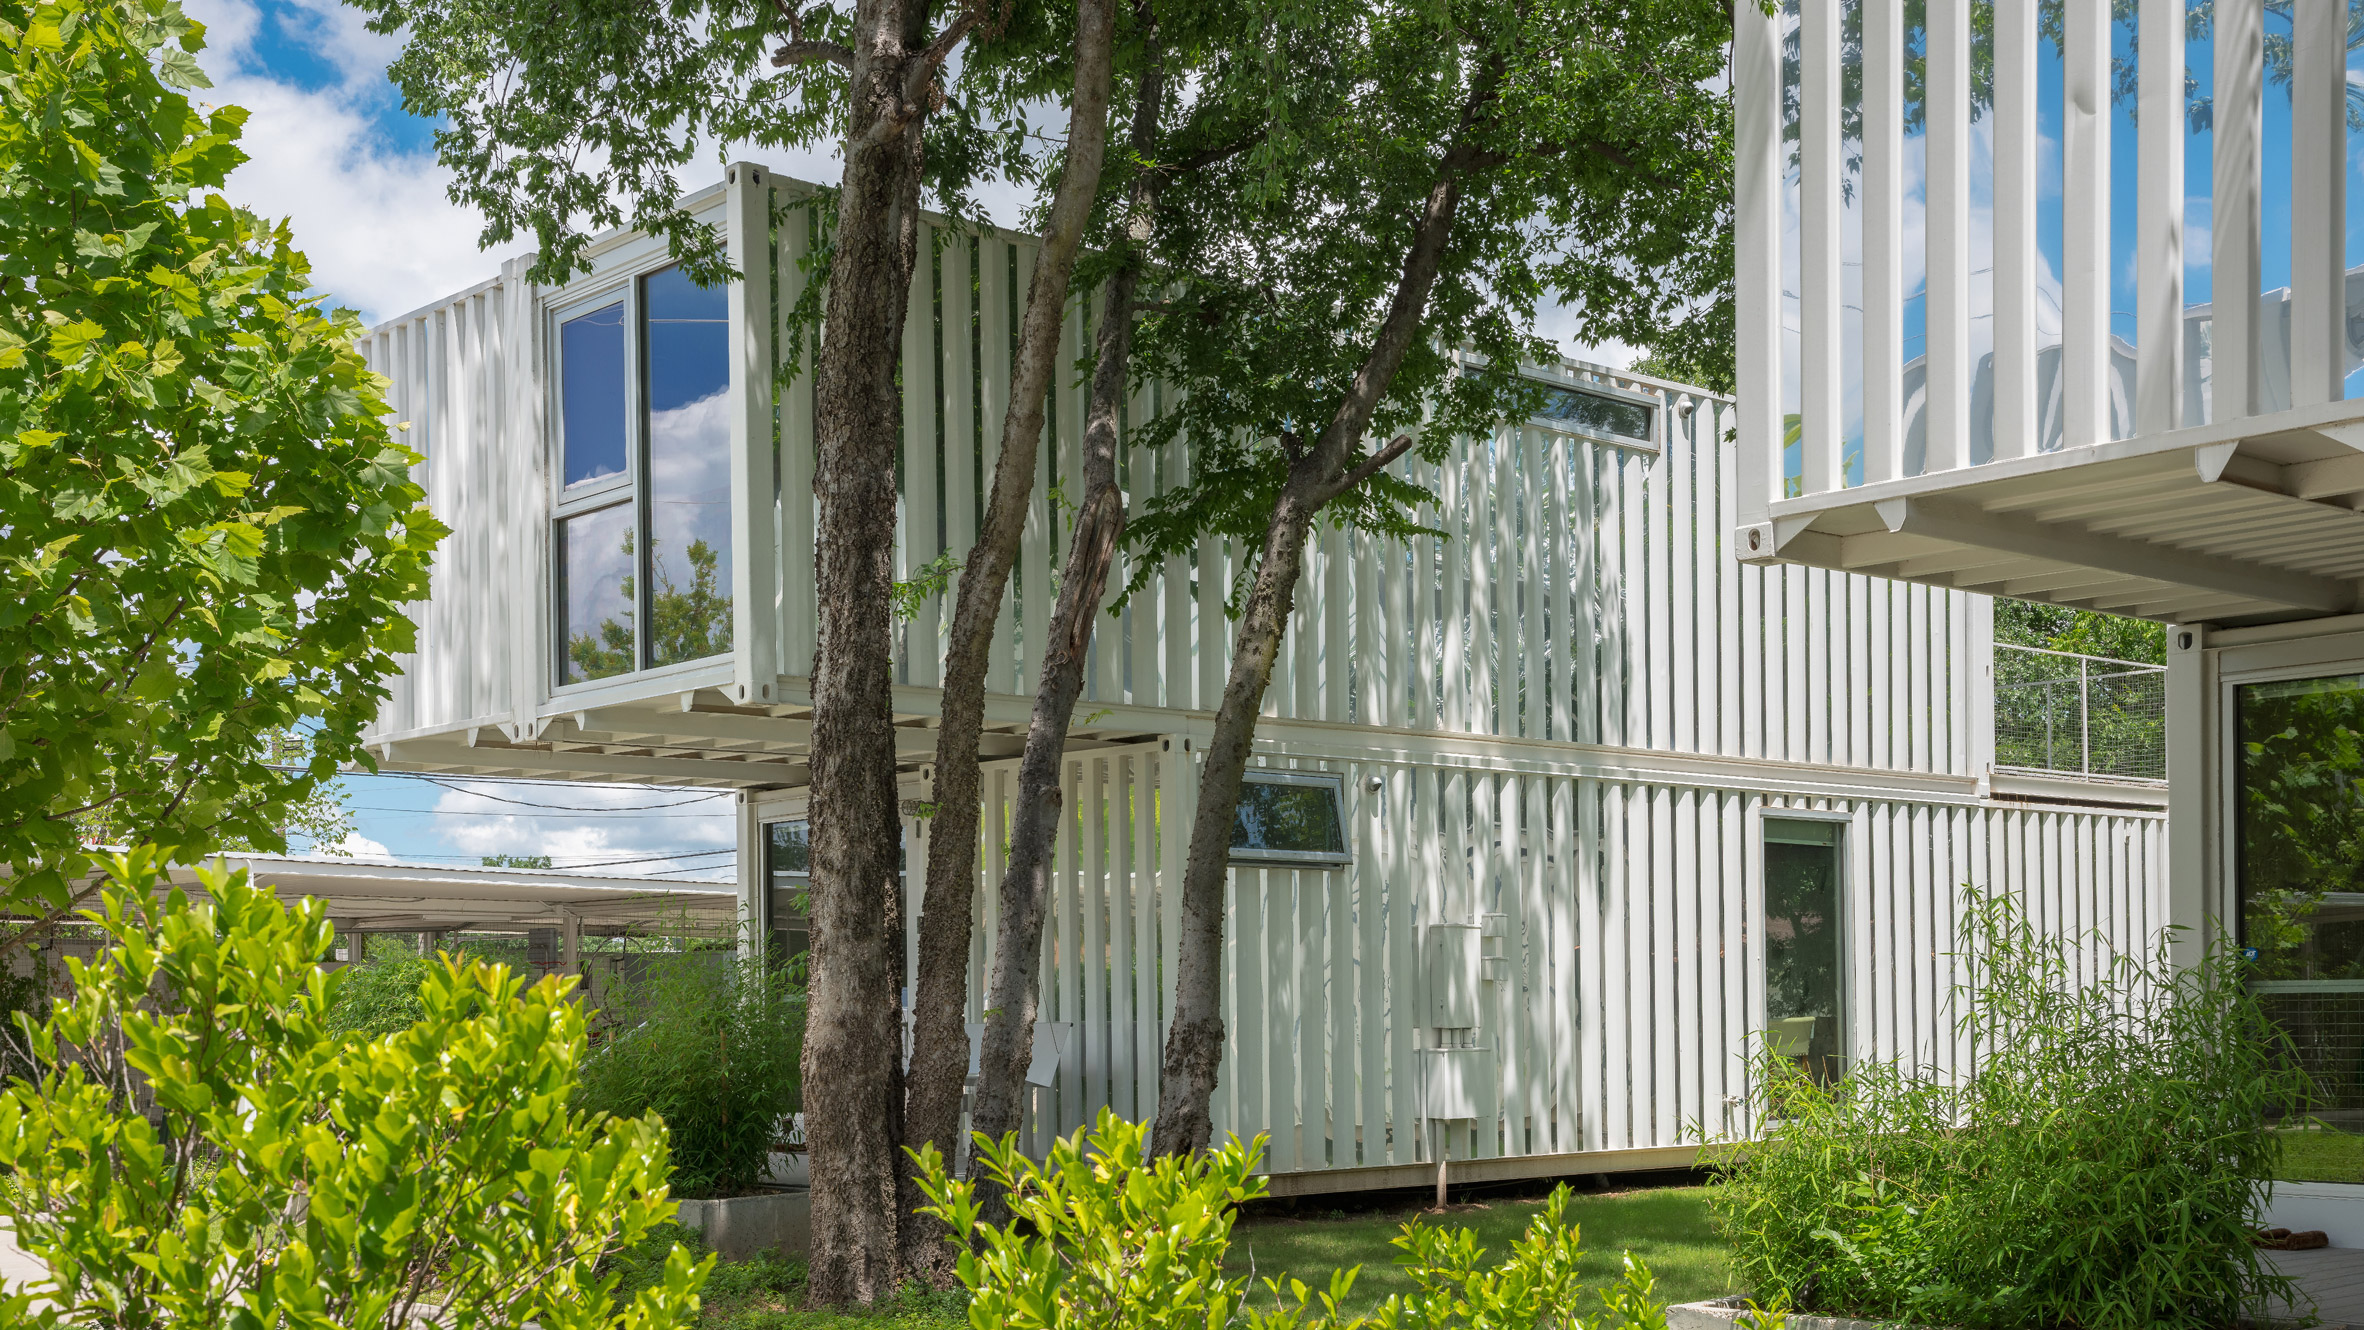 Picture of: Ahmm Unveils Shipping Container Housing Development In Oklahoma